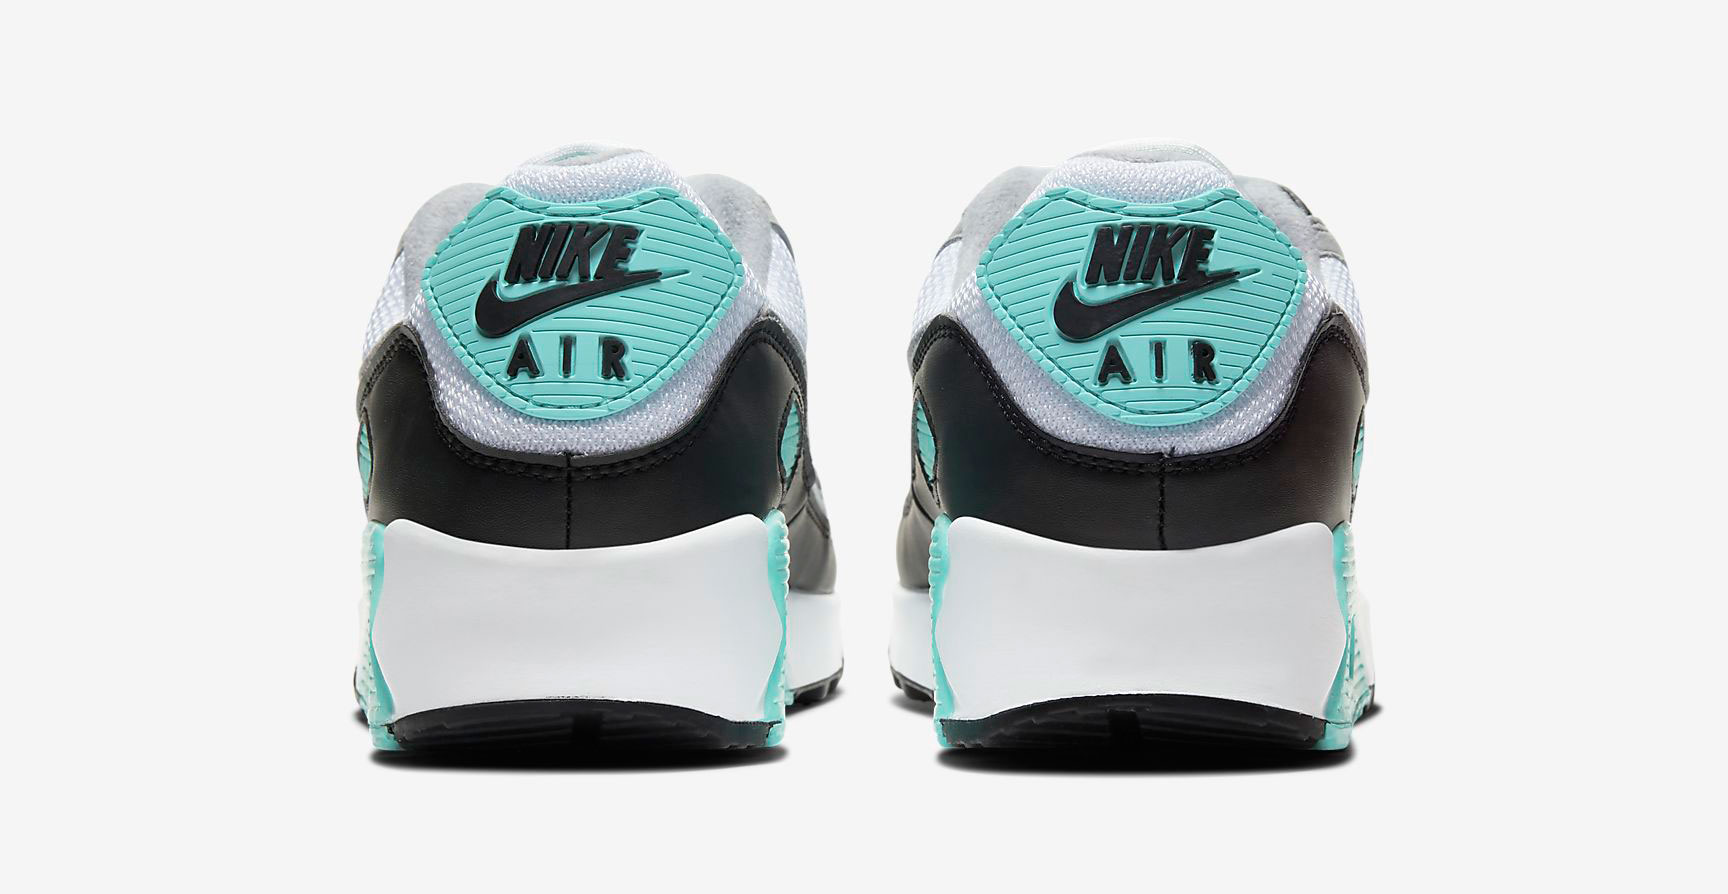 nike-air-max-90-hyper-turquoise-release-date-price-5